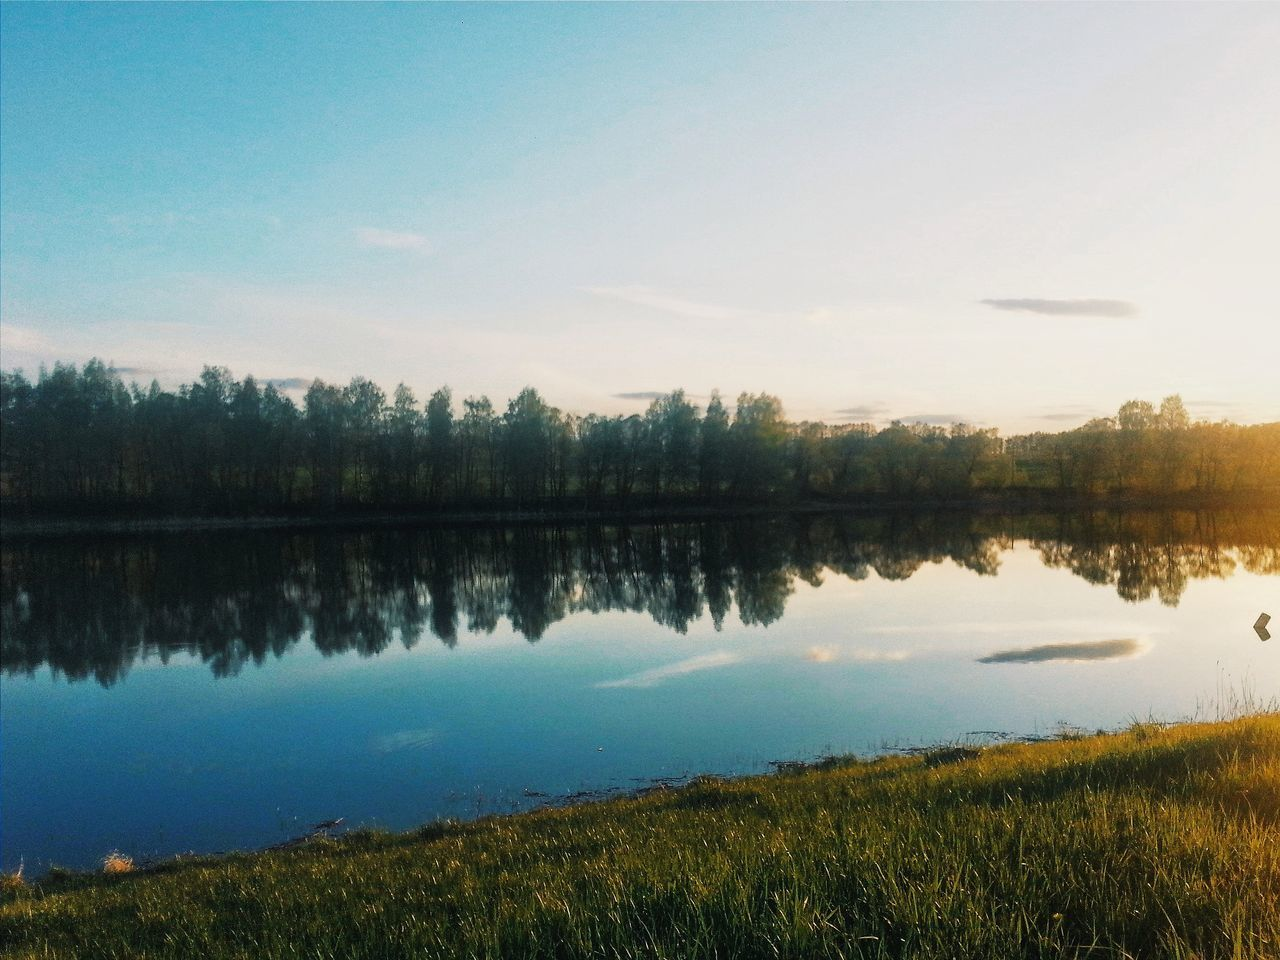 reflection, lake, water, nature, tree, tranquil scene, sky, tranquility, beauty in nature, scenics, outdoors, no people, grass, growth, travel destinations, sunset, day